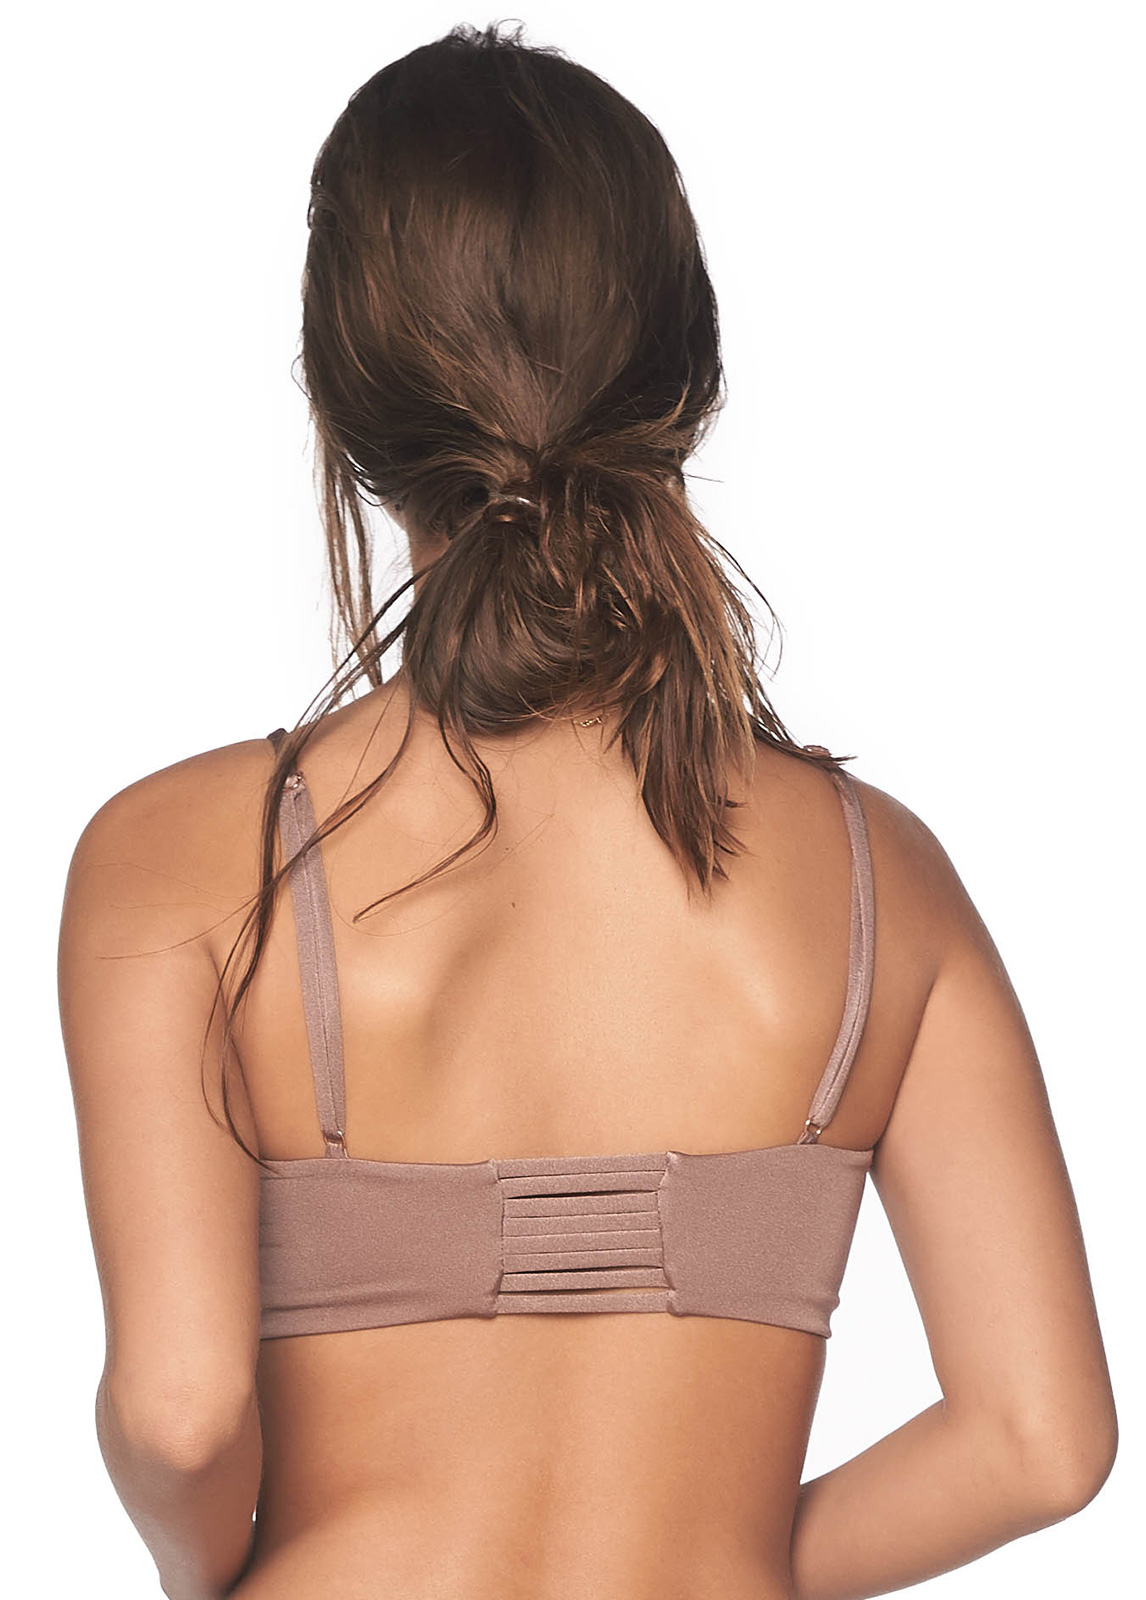 bbc5c0282936f Iridescent Taupe Bikini Top With Straps - Top Benegal Sparkly Taupe ...